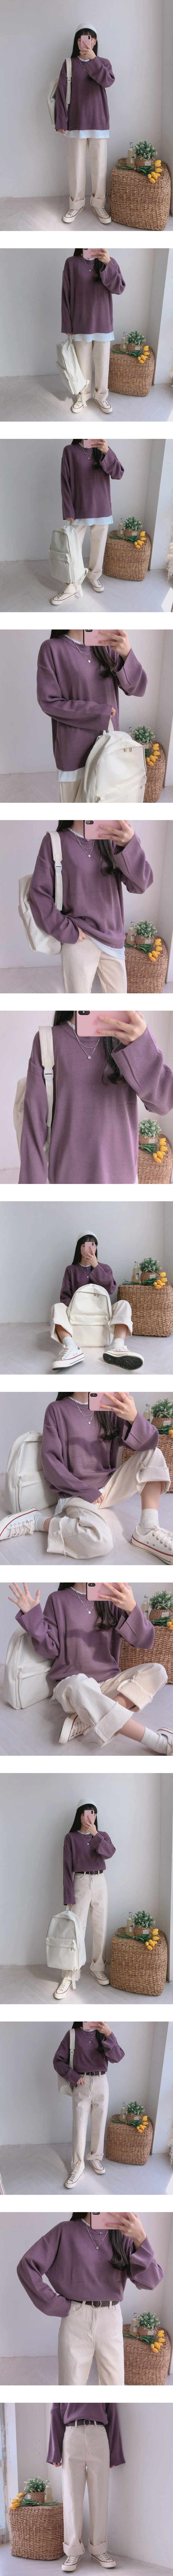 Lily round knit